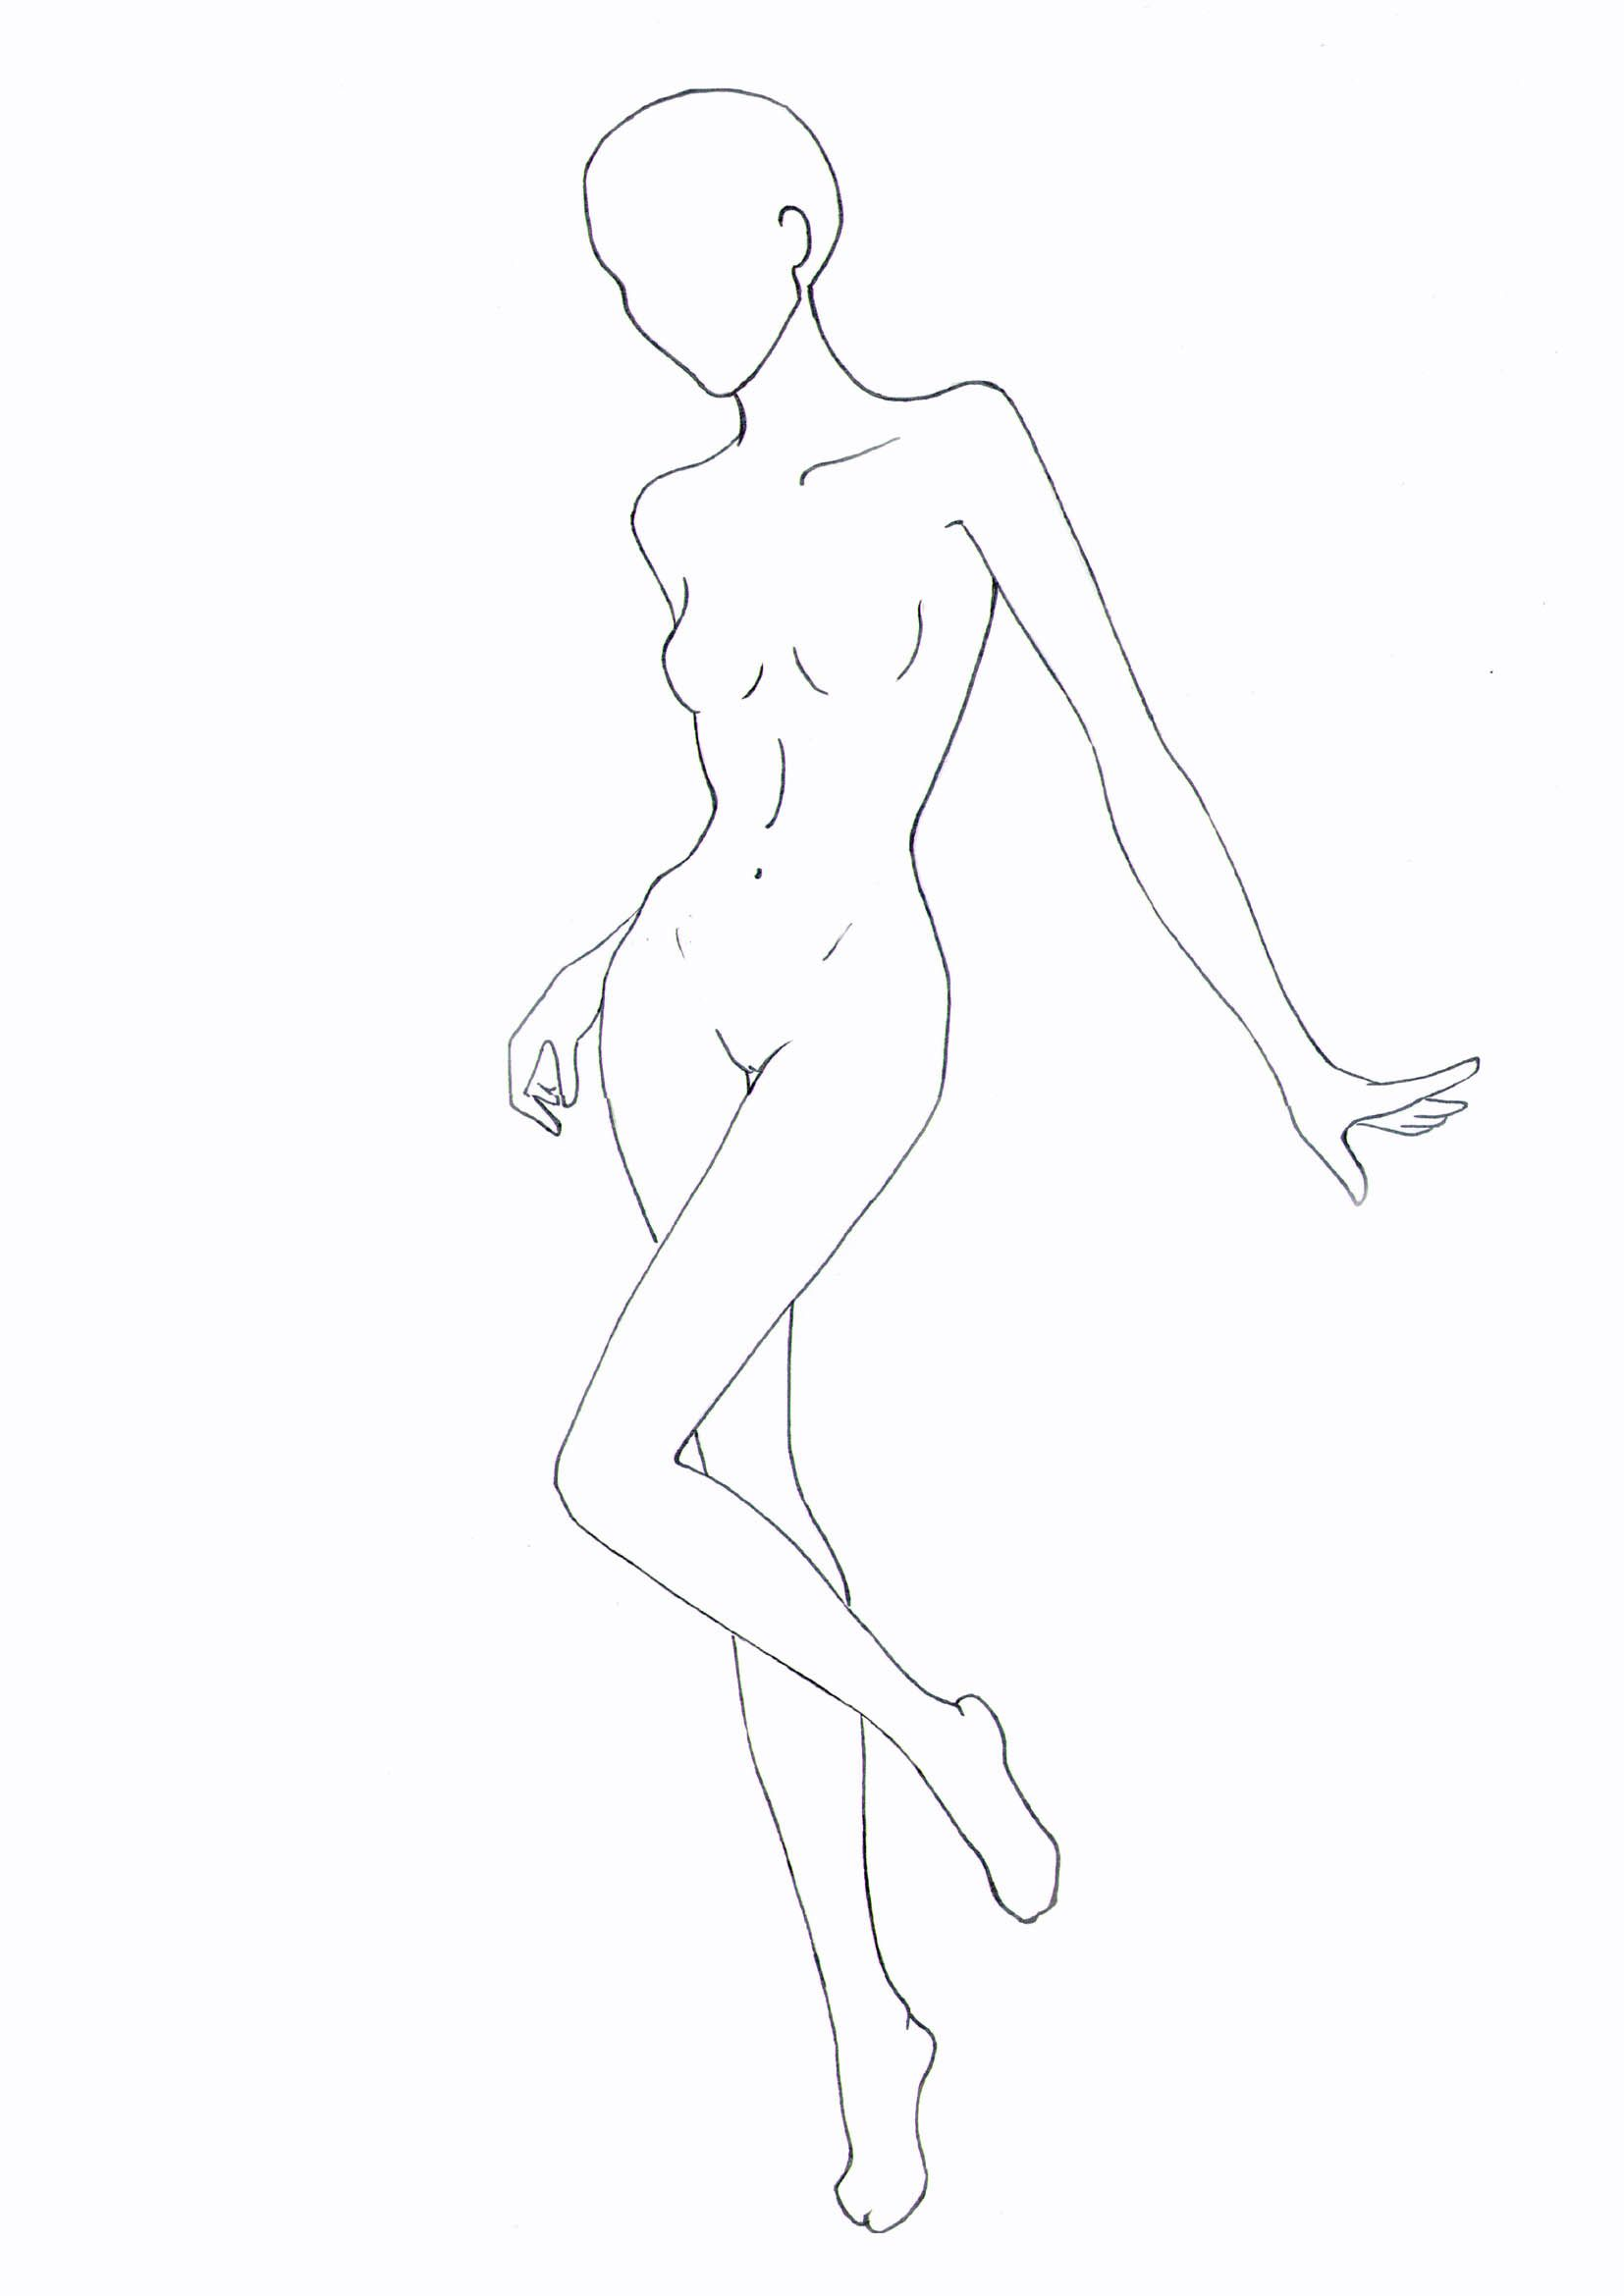 Fashion Model Outline : fashion, model, outline, Figure, Template, Fashion, Model, Drawing,, Illustration, Template,, Sketch